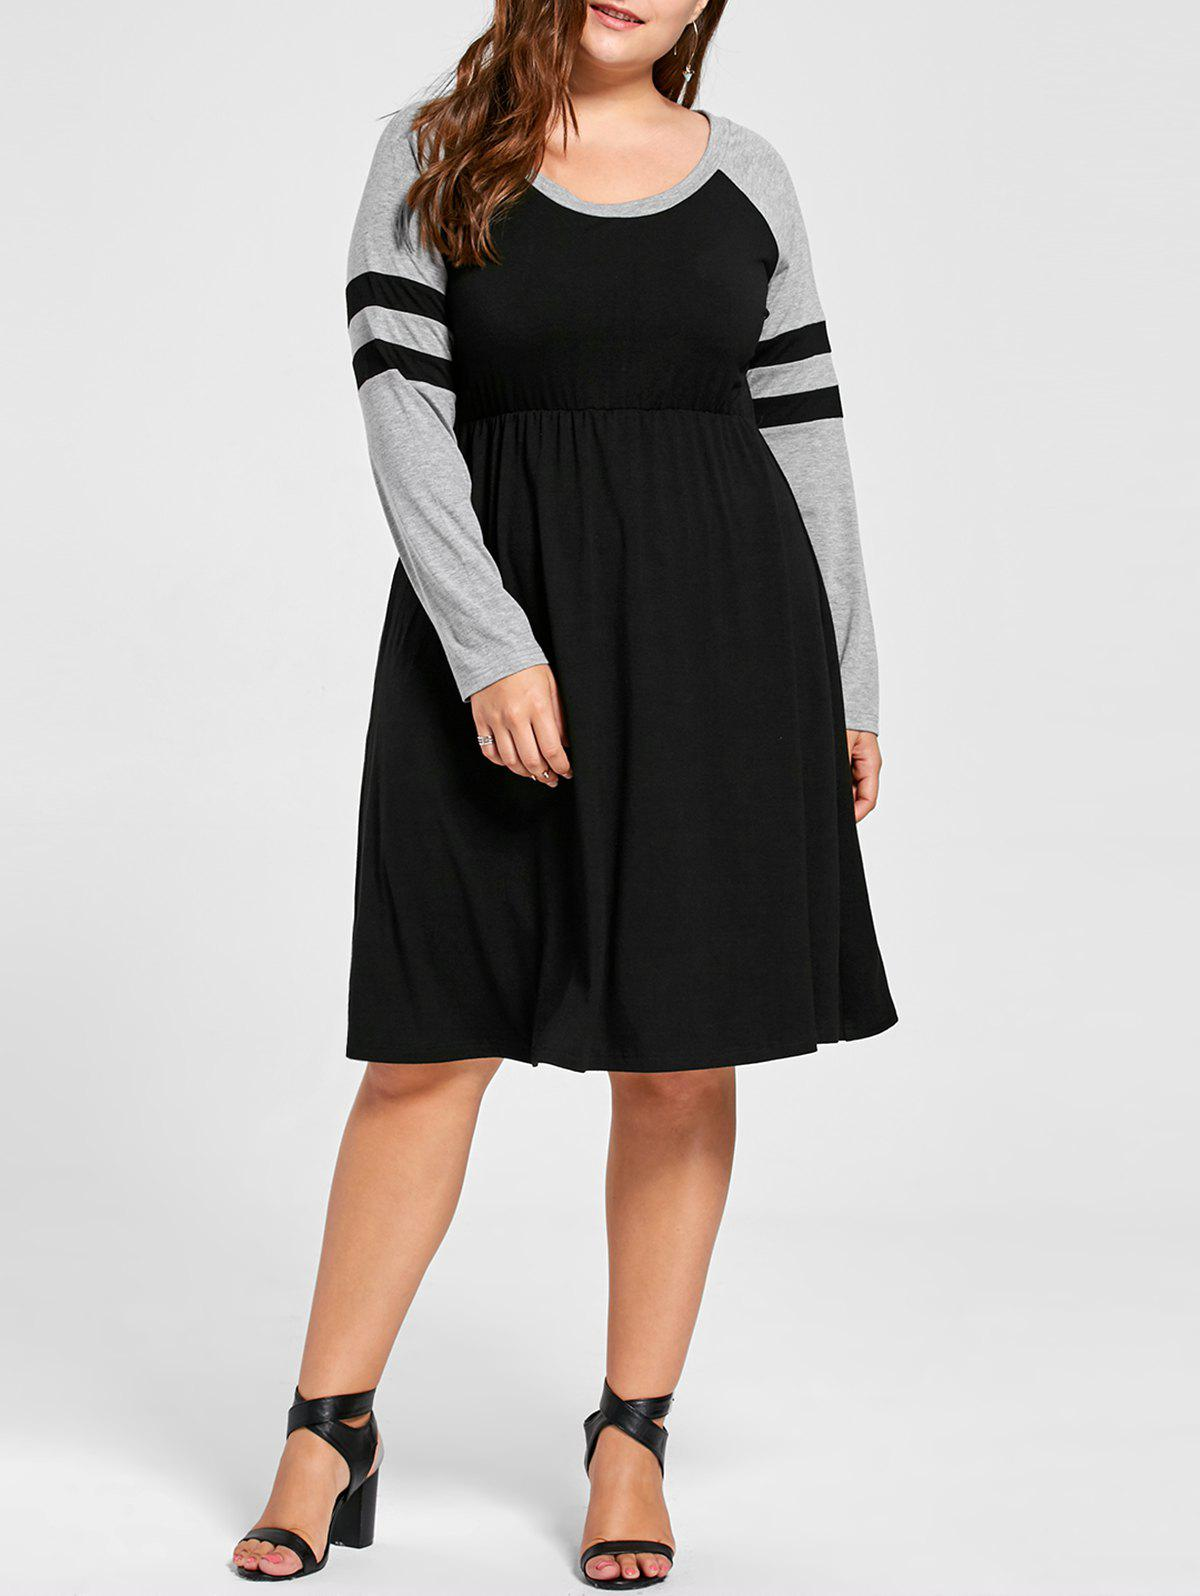 Plus Size Long Sleeve Tee DressWOMEN<br><br>Size: 5XL; Color: BLACK; Style: Casual; Material: Polyester,Spandex; Silhouette: A-Line; Dresses Length: Knee-Length; Neckline: Scoop Neck; Sleeve Length: Long Sleeves; Pattern Type: Striped; With Belt: No; Season: Fall,Spring,Summer; Weight: 0.4000kg; Package Contents: 1 x Dress;